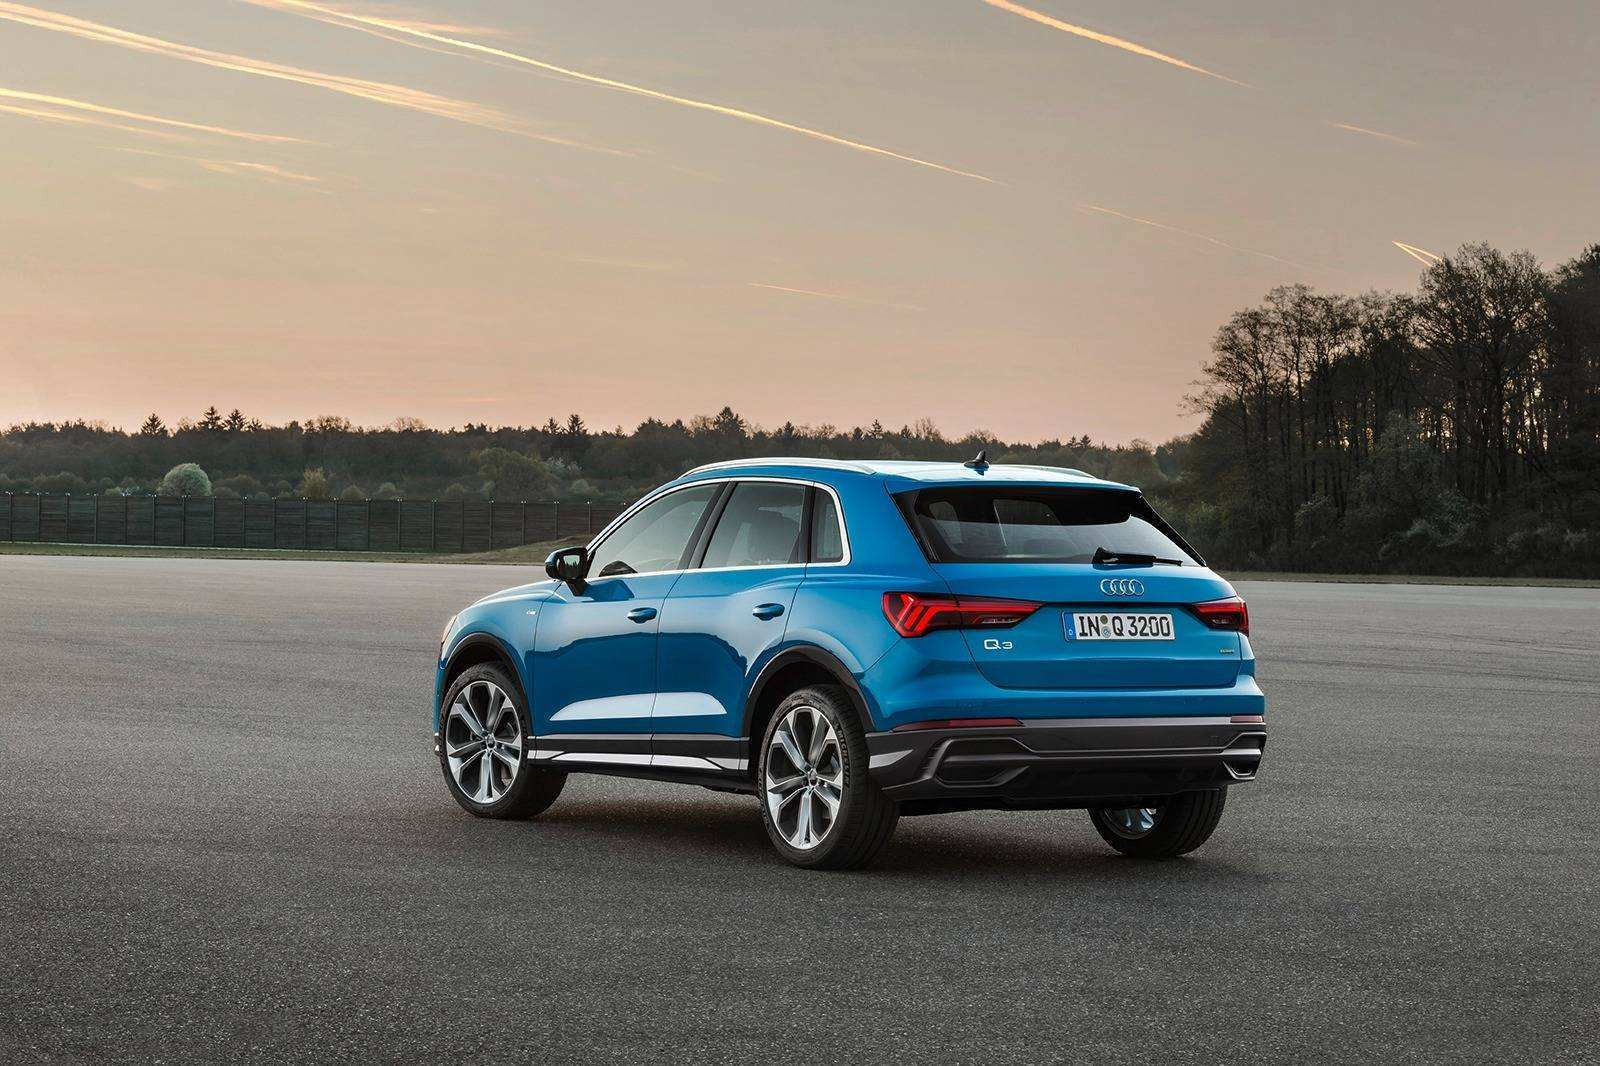 40 Great 2019 Audi Hybrid Suv Price And Release Date Exterior for 2019 Audi Hybrid Suv Price And Release Date